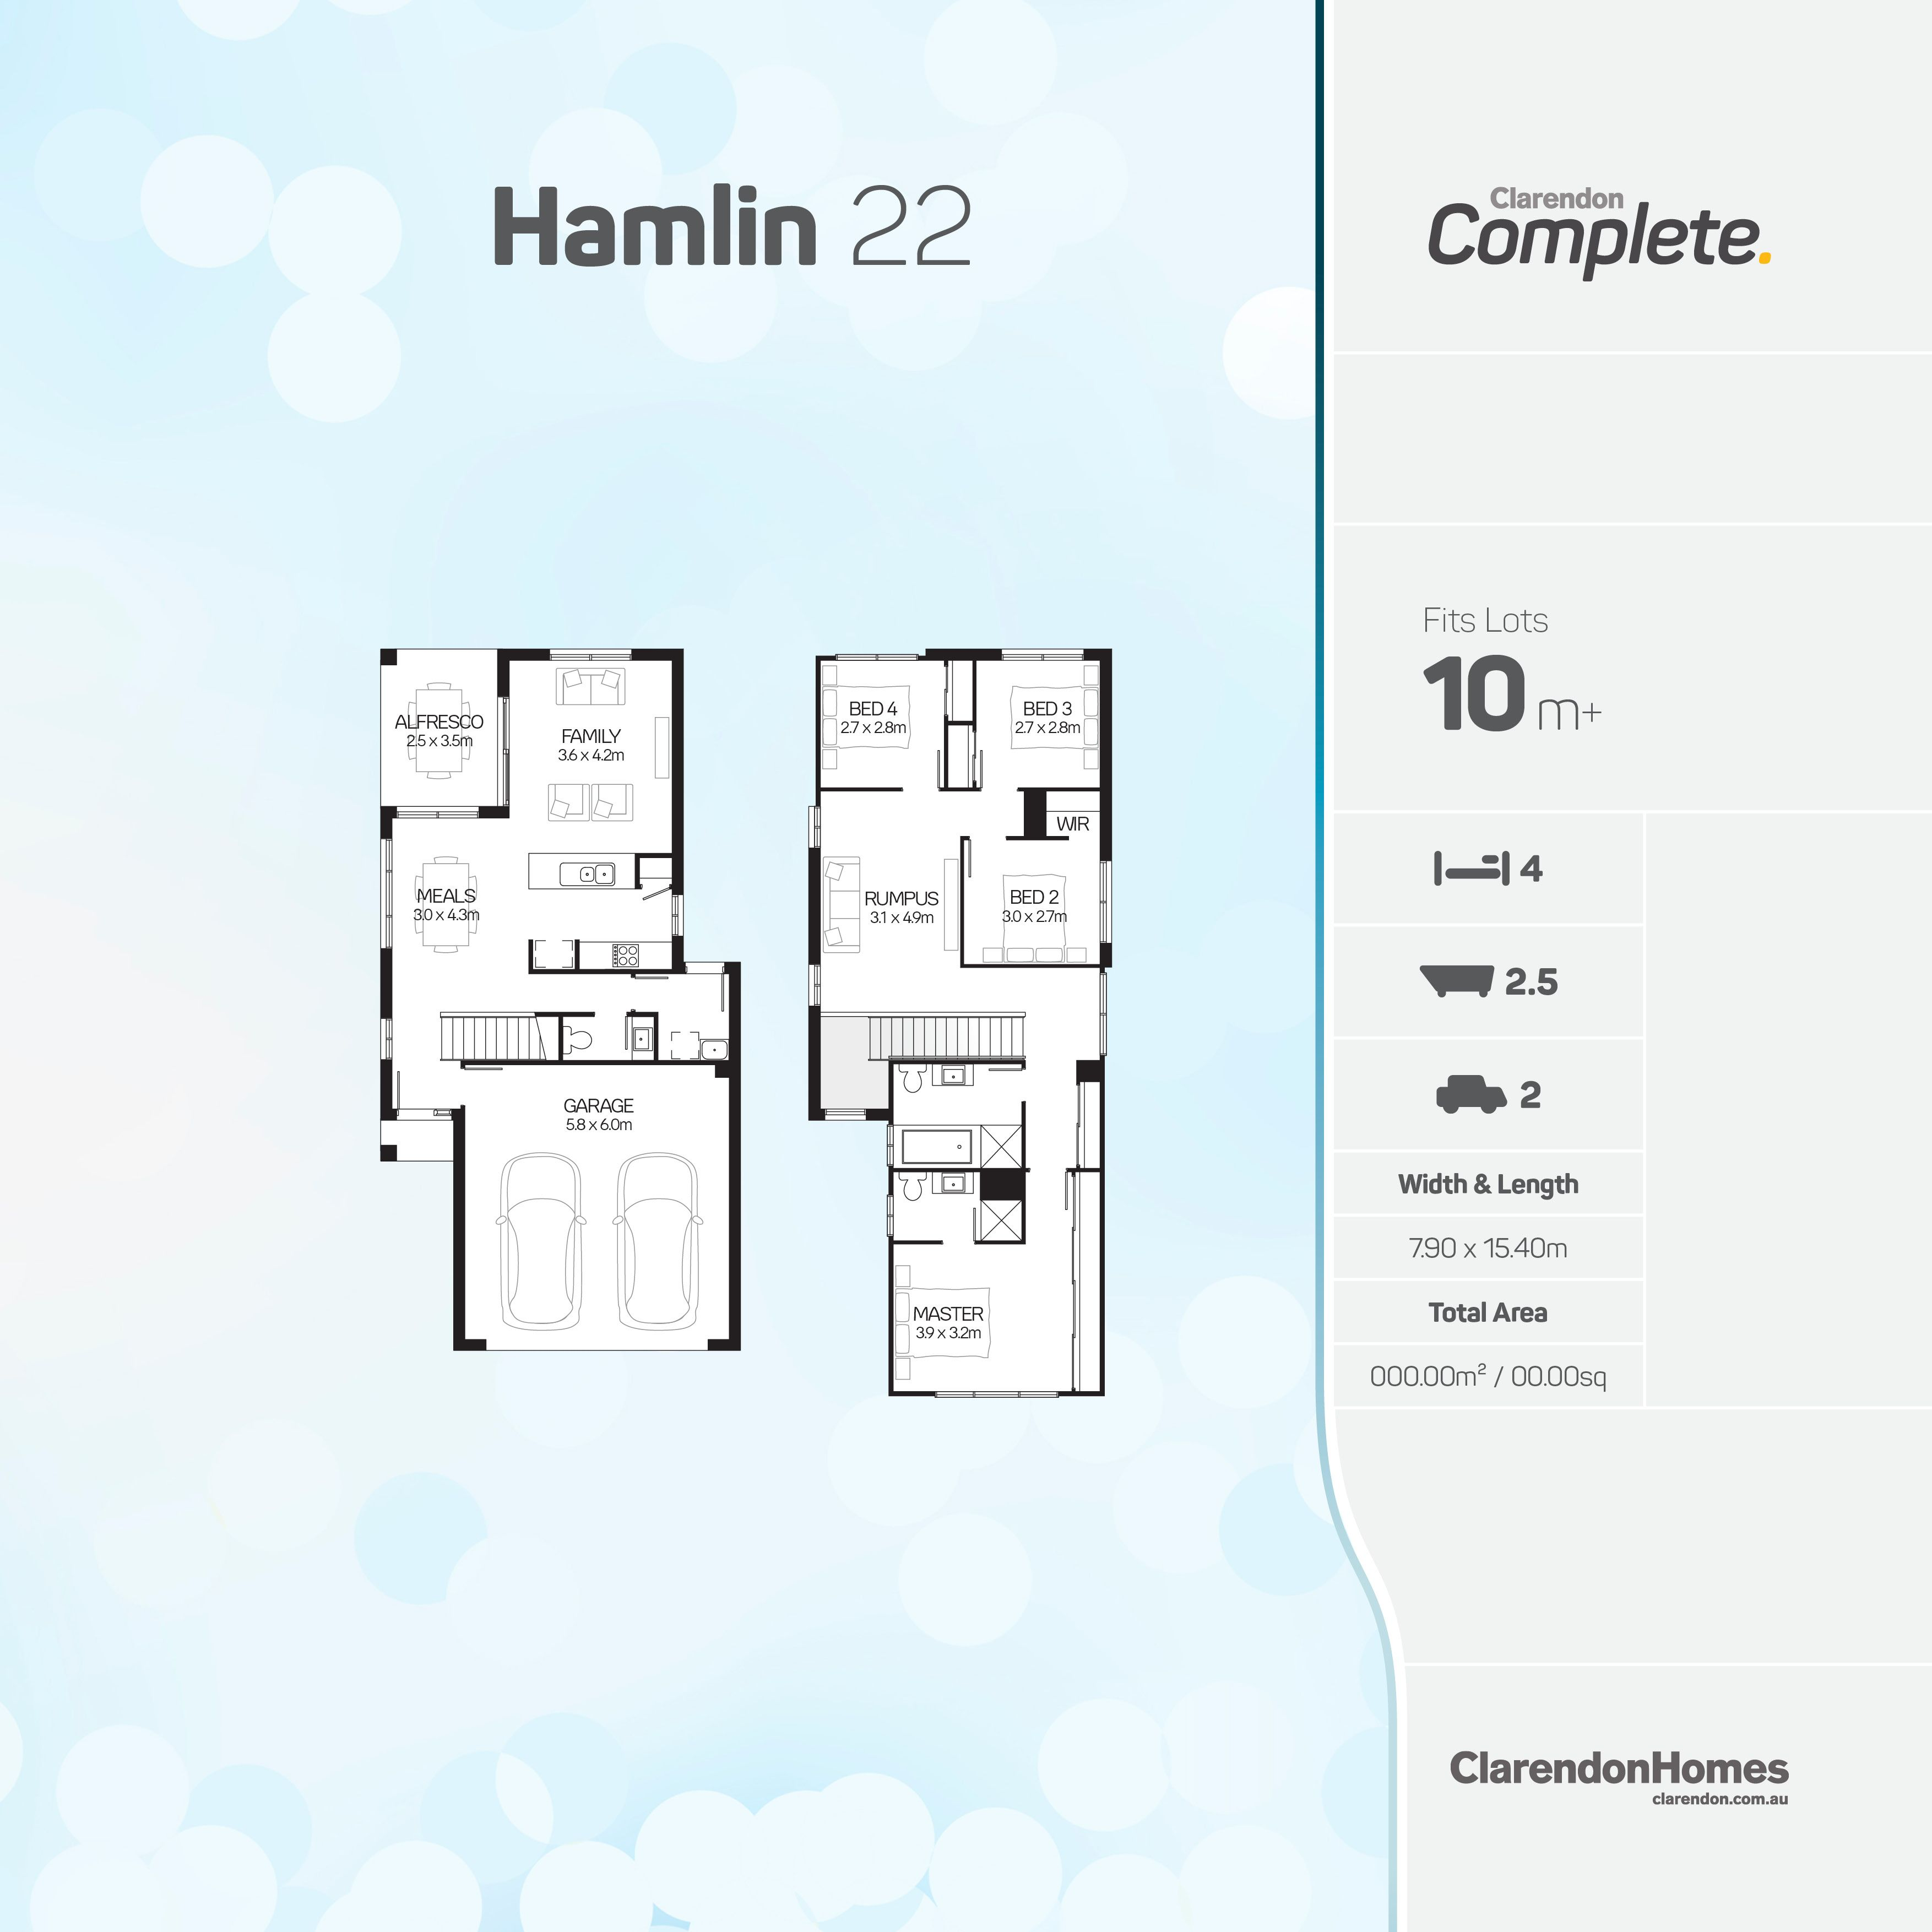 Clarendon Homes - Complete. Hamlin 22. An effcient design packed ...